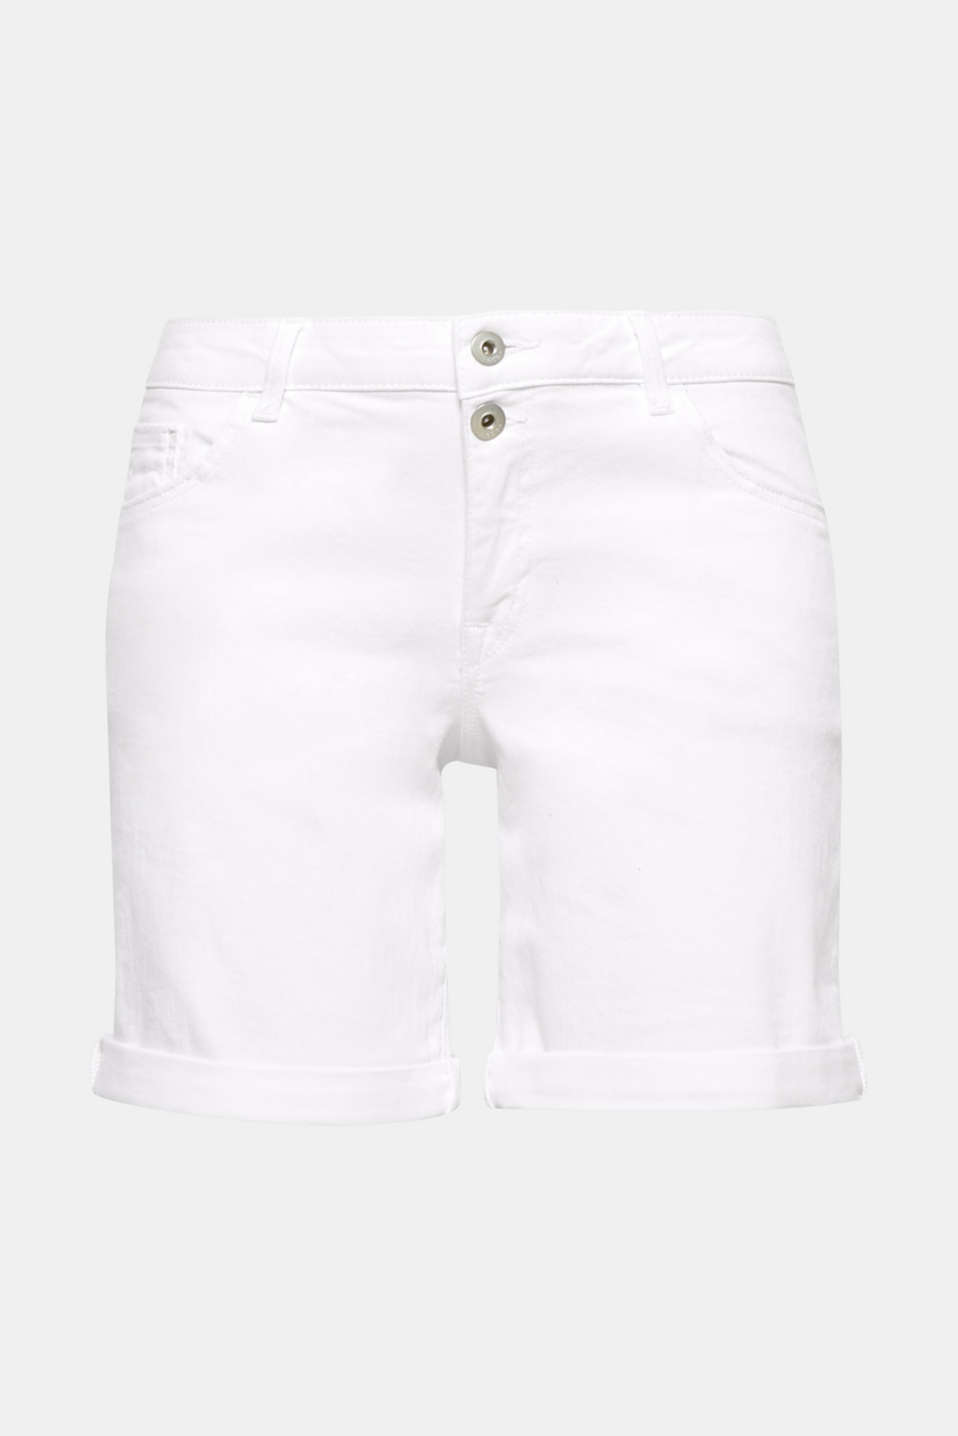 A must-have for your summer wardrobe: clean white cotton denim shorts with added stretch for comfort